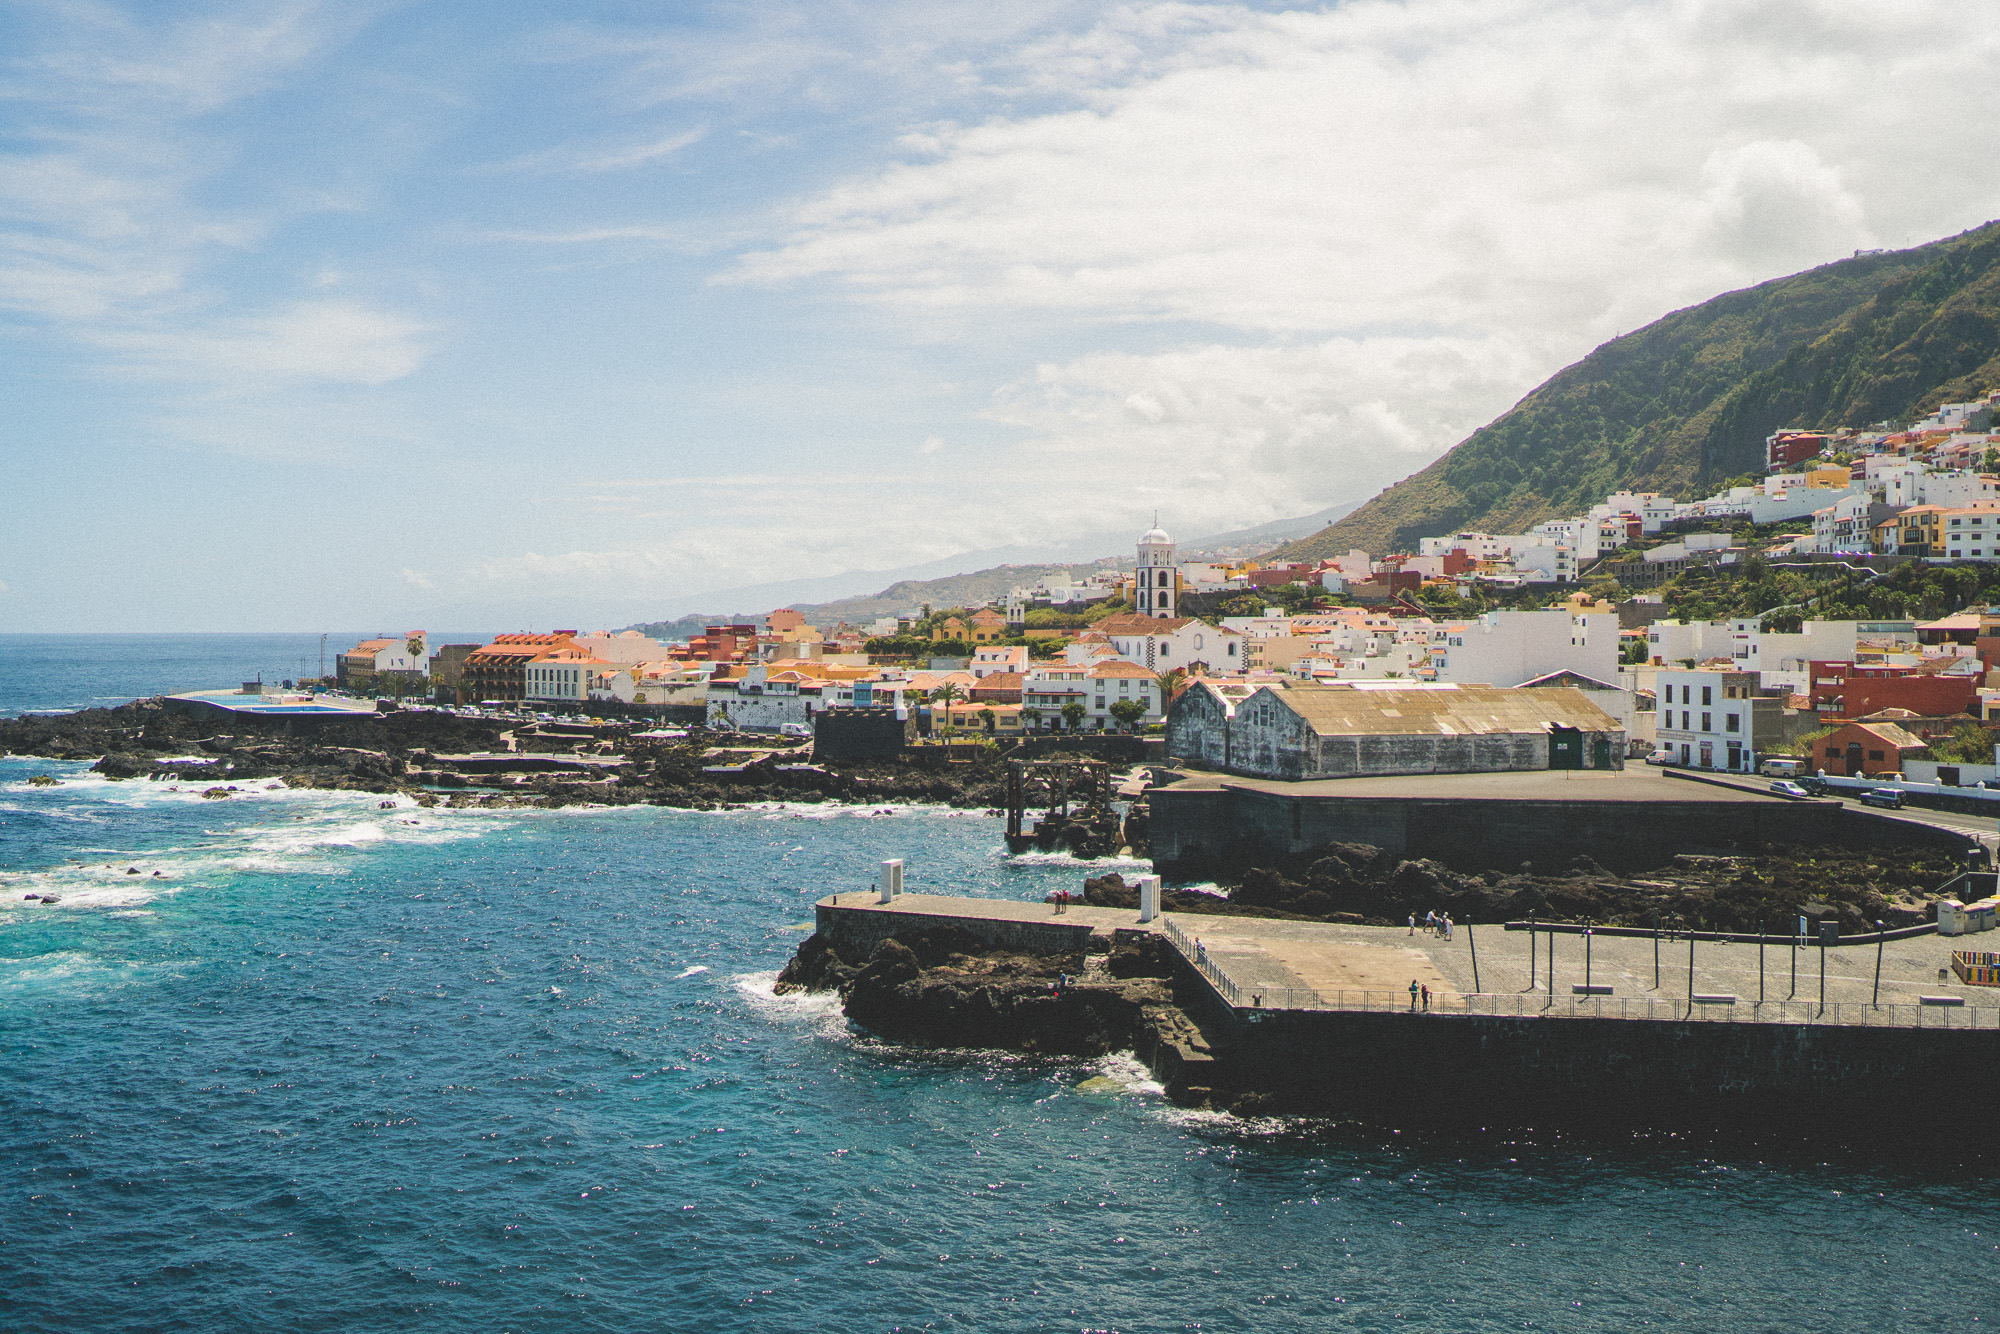 Garachico town in Tenerife, Canary Islands, Spain